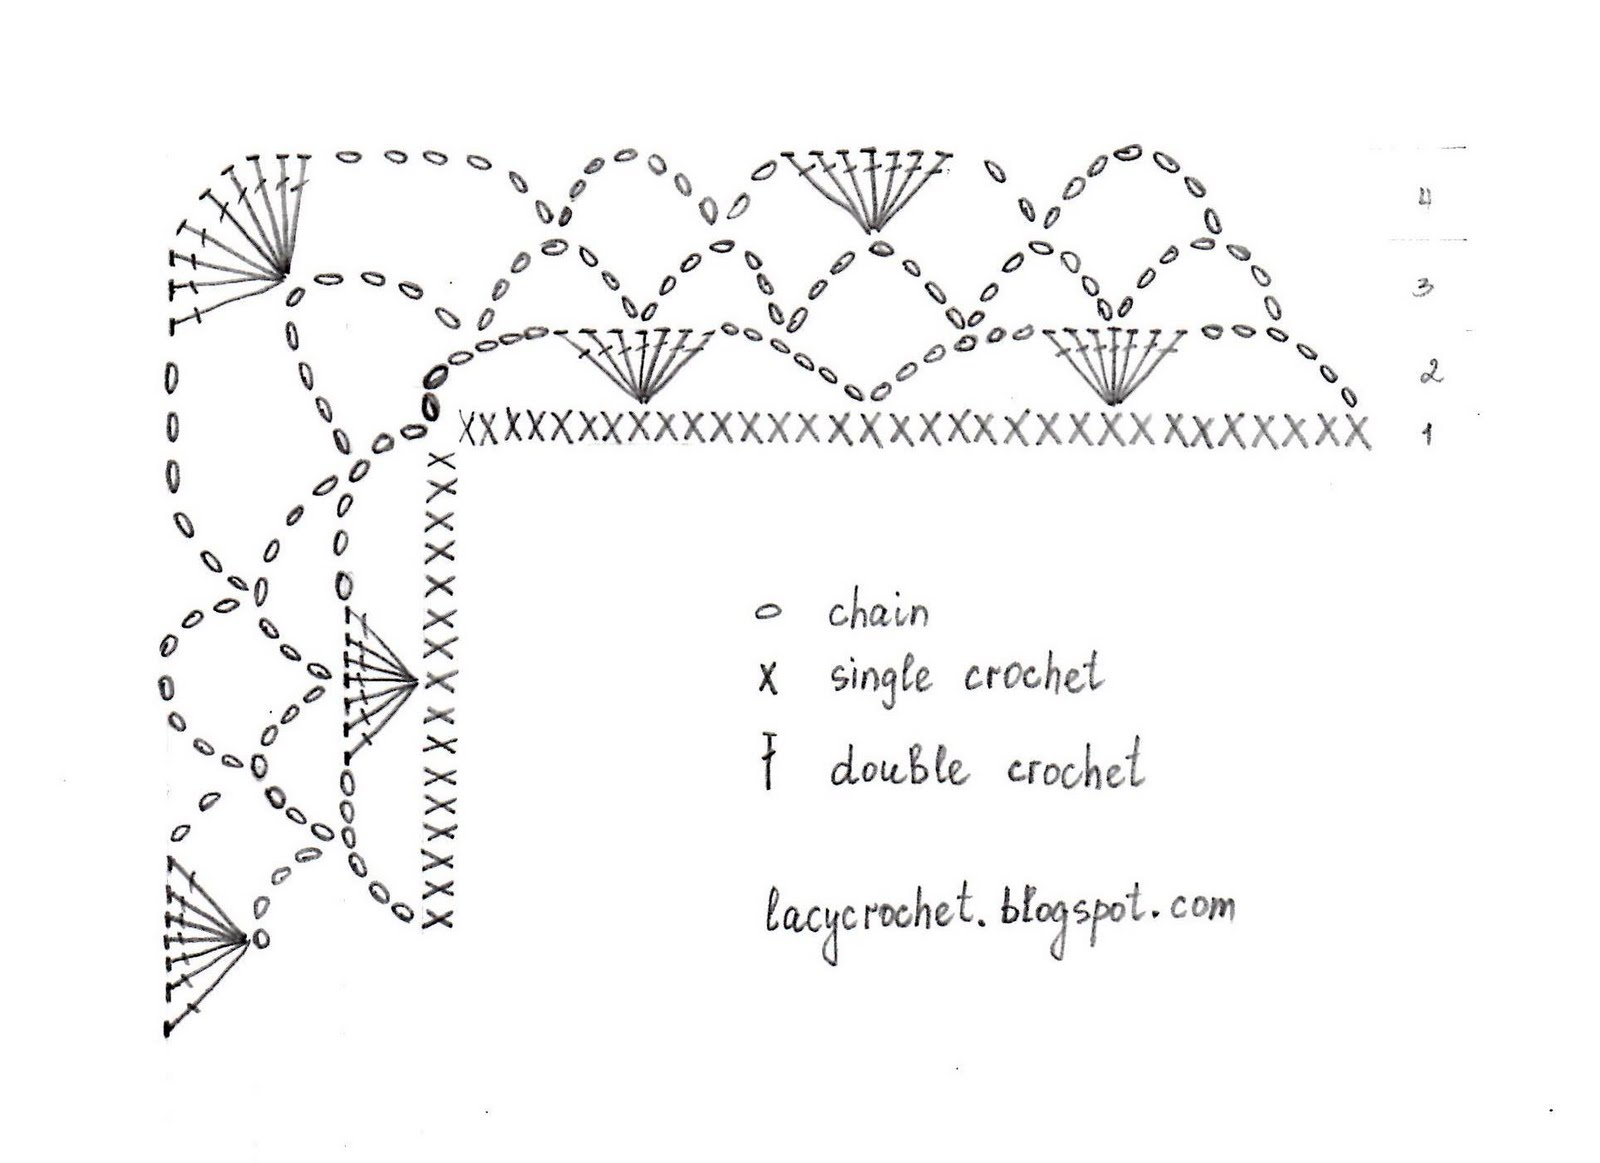 Lacy crochet more crochet edgings for handkerchiefs crochet lace pattern crochet edging pattern bankloansurffo Image collections